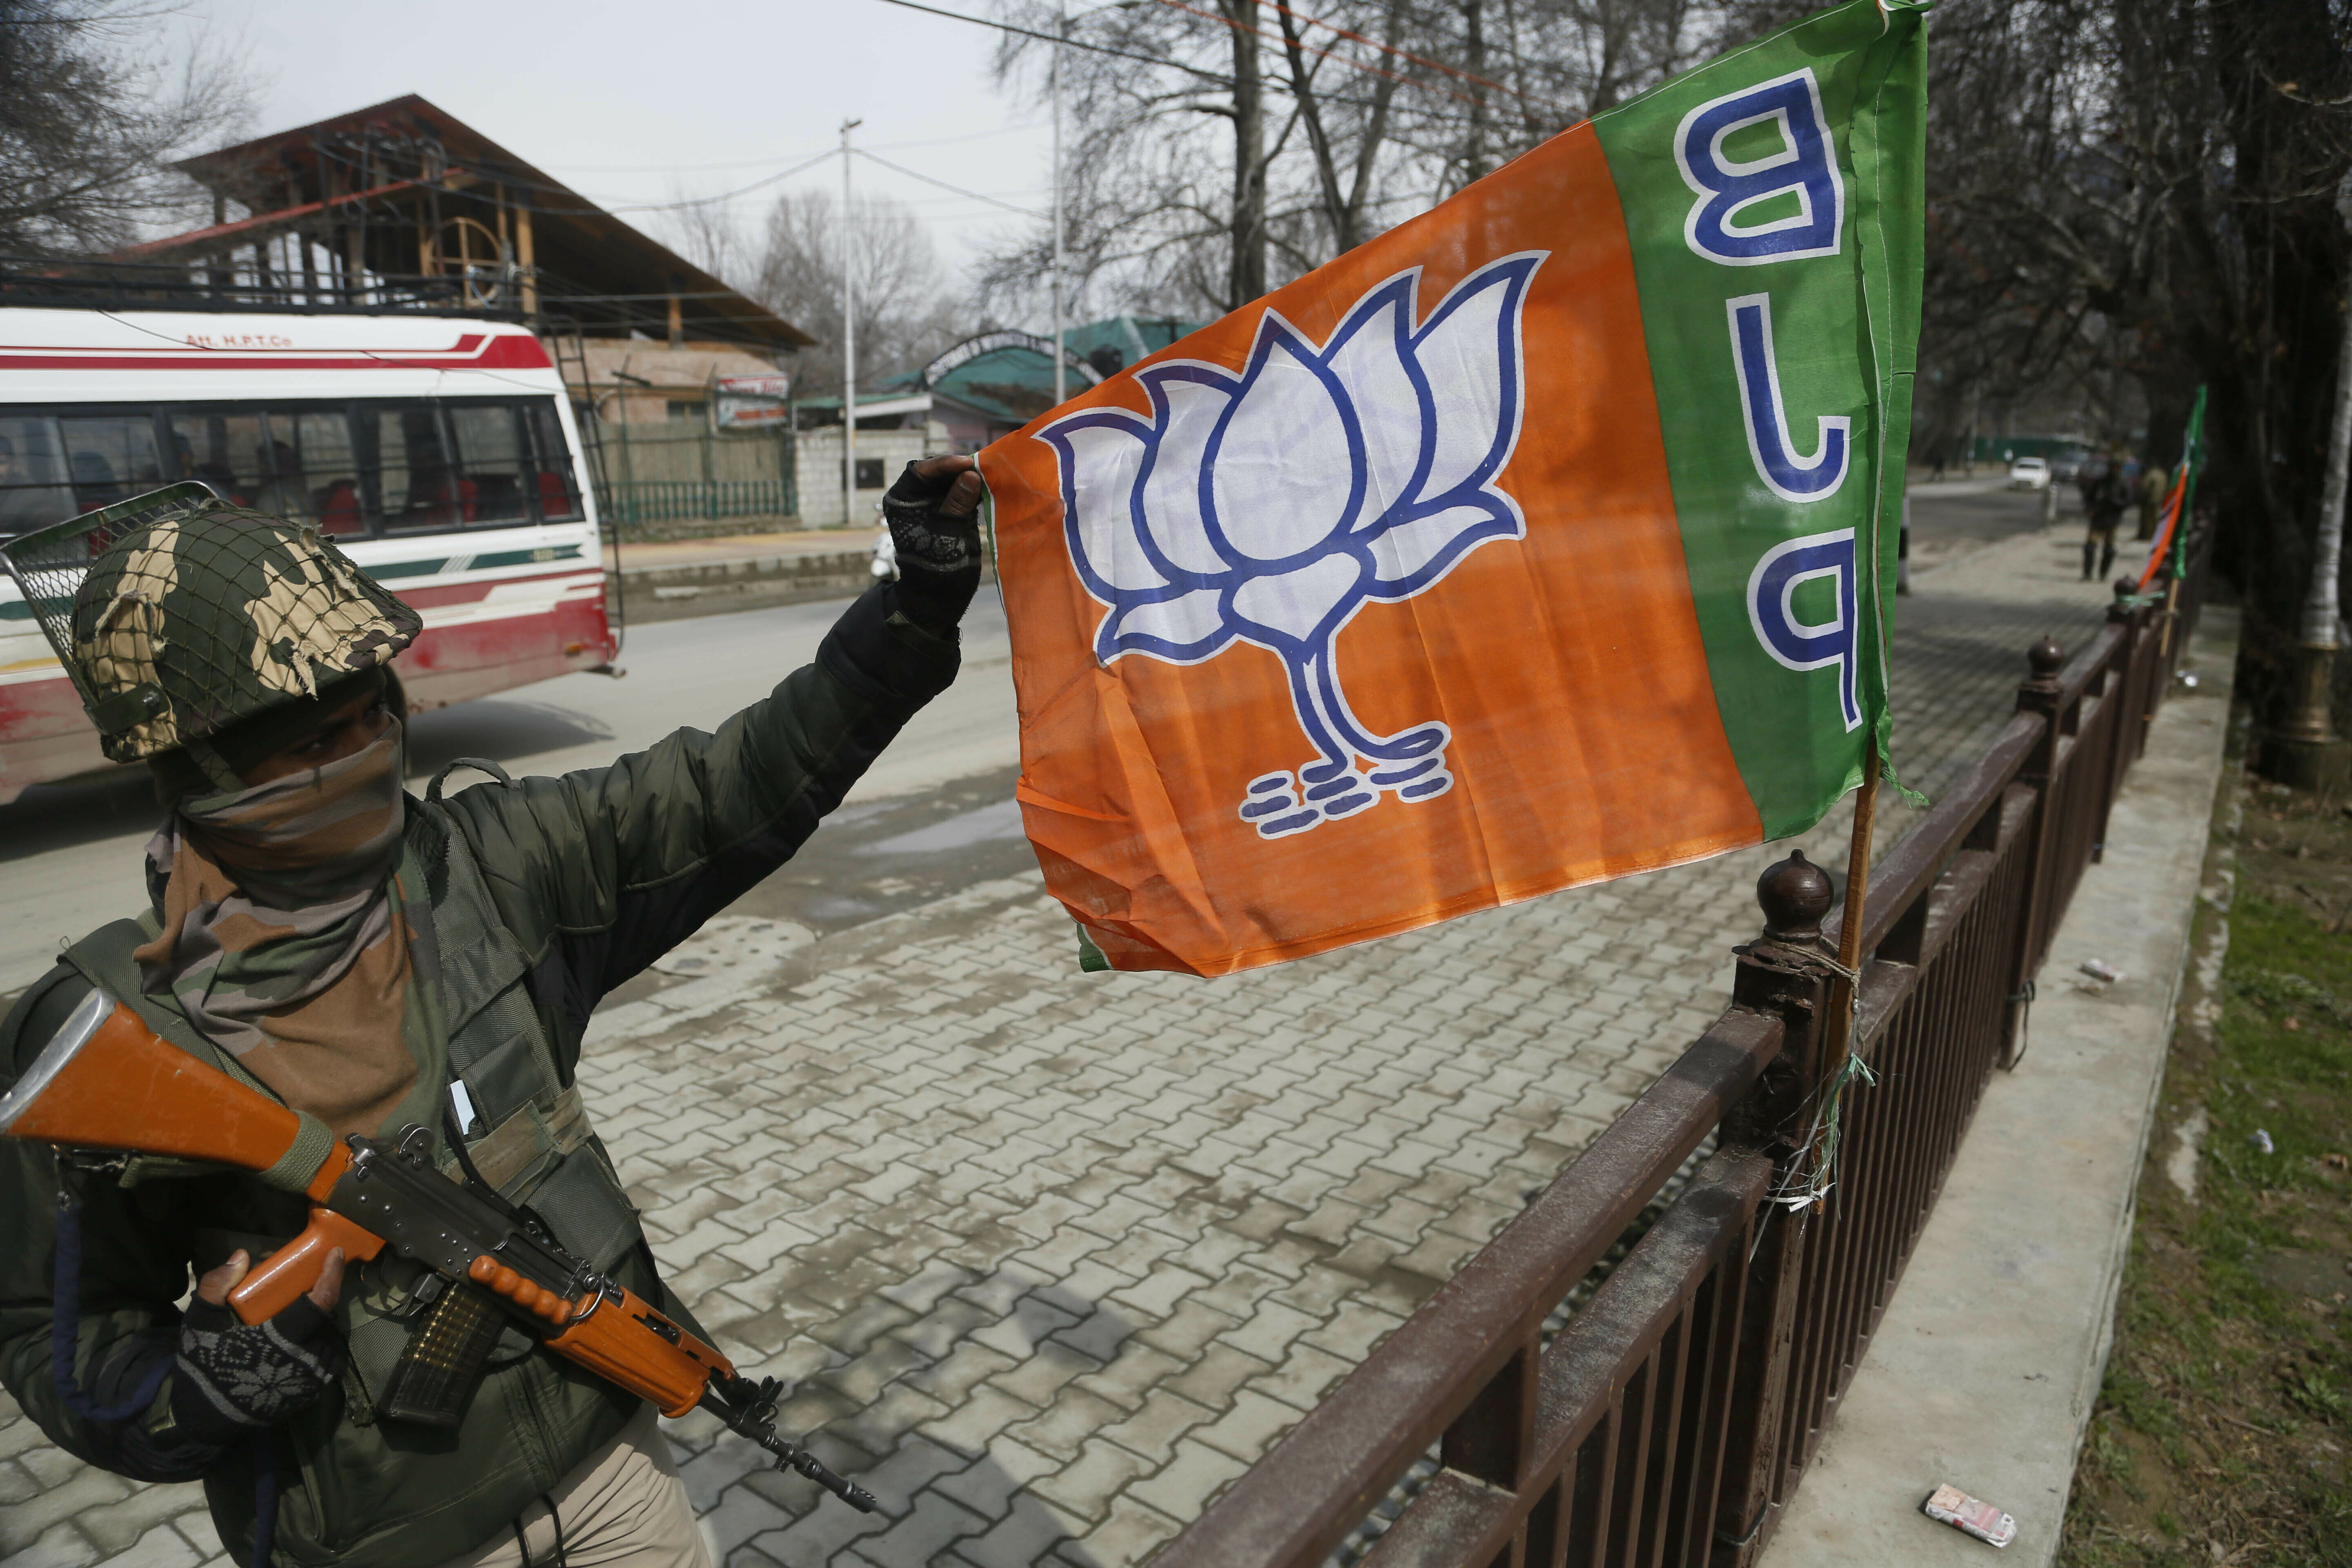 "FILE - In this Thursday, March 14, 2019, file photo, an Indian paramilitary soldier holds a flag of India's ruling Bharatiya Janata Party (BJP) as he stands guard during a meeting of the party ahead of the upcoming elections in Srinagar, Indian controlled Kashmir. Indian Prime Minister Narendra Modi has promised early elections in the Indian-controlled portion of Kashmir days after stripping it of statehood and turning it into a federally administered territory. In an address to the nation late Thursday, Aug. 8, Modi said the change in Kashmir's set-up will help free the disputed region of ""terrorism and separatism"" and put it on a path of development. (AP Photo/Mukhtar Khan, File)"